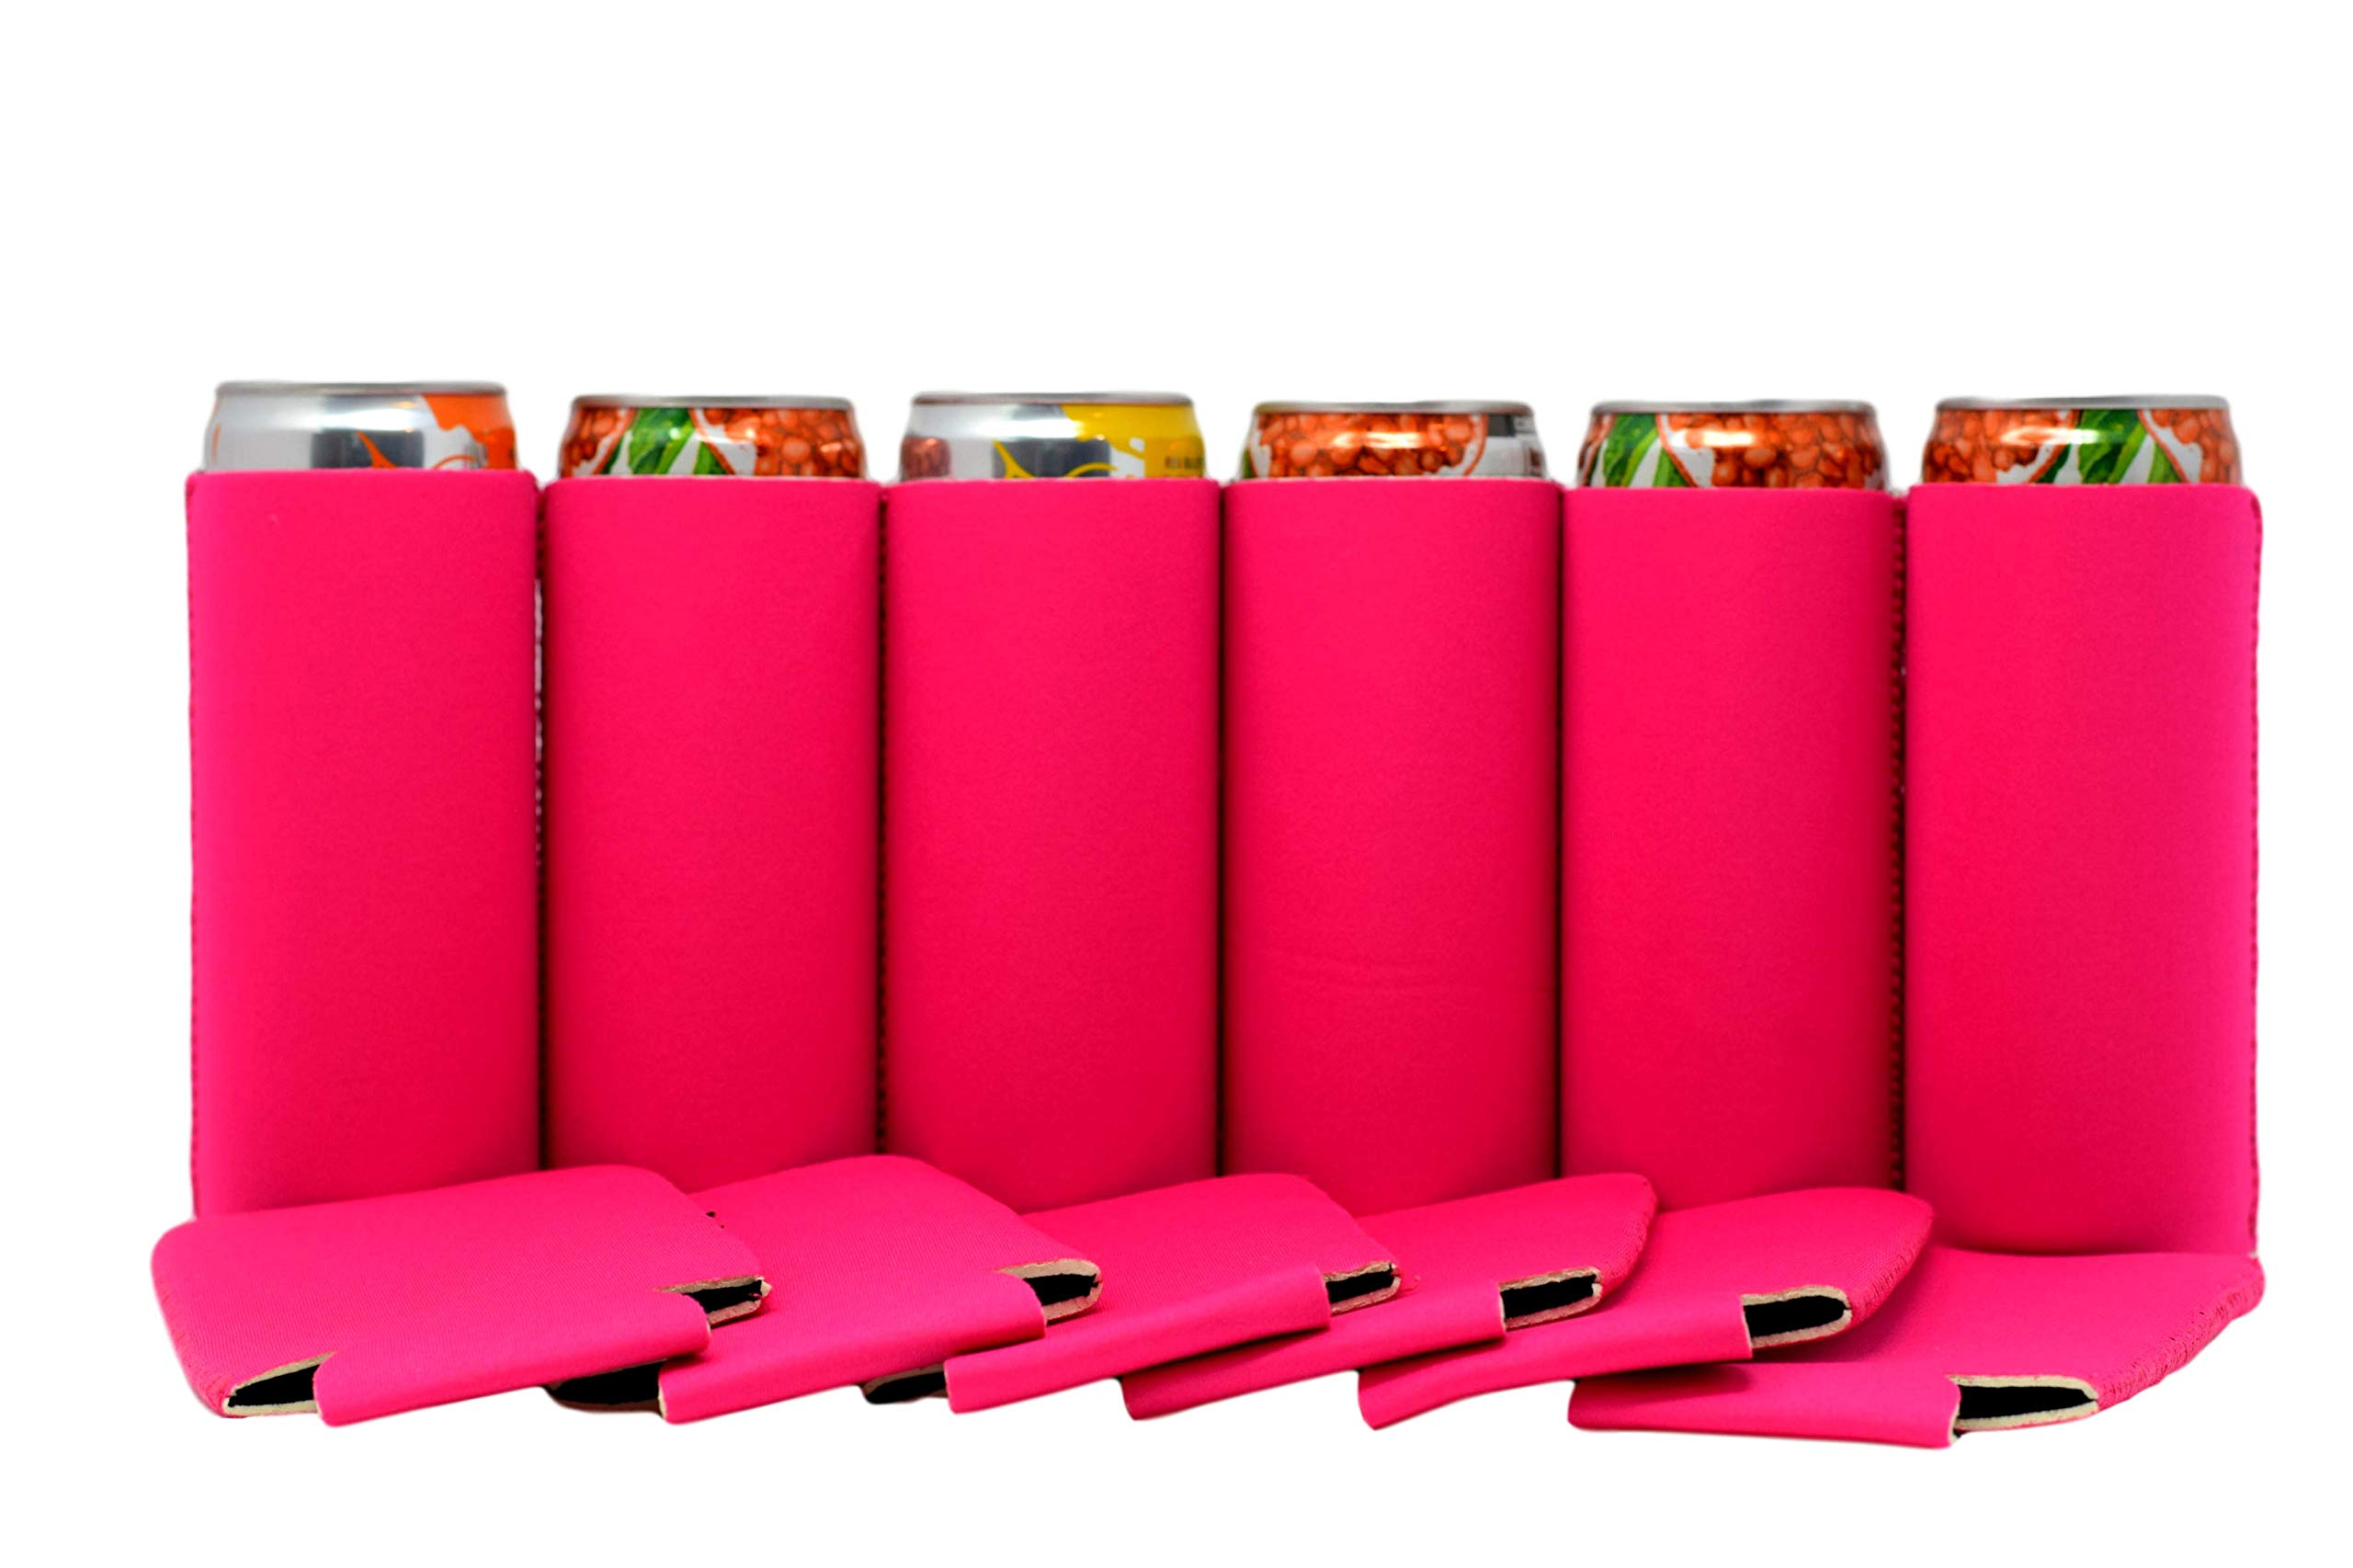 QualityPerfection Ultra Slim Can Sleeves Premium Slim Beer Can,Energy Sleeves Great 4 Holidays,Events,Parties,Independence Day (12, Hot Pink)